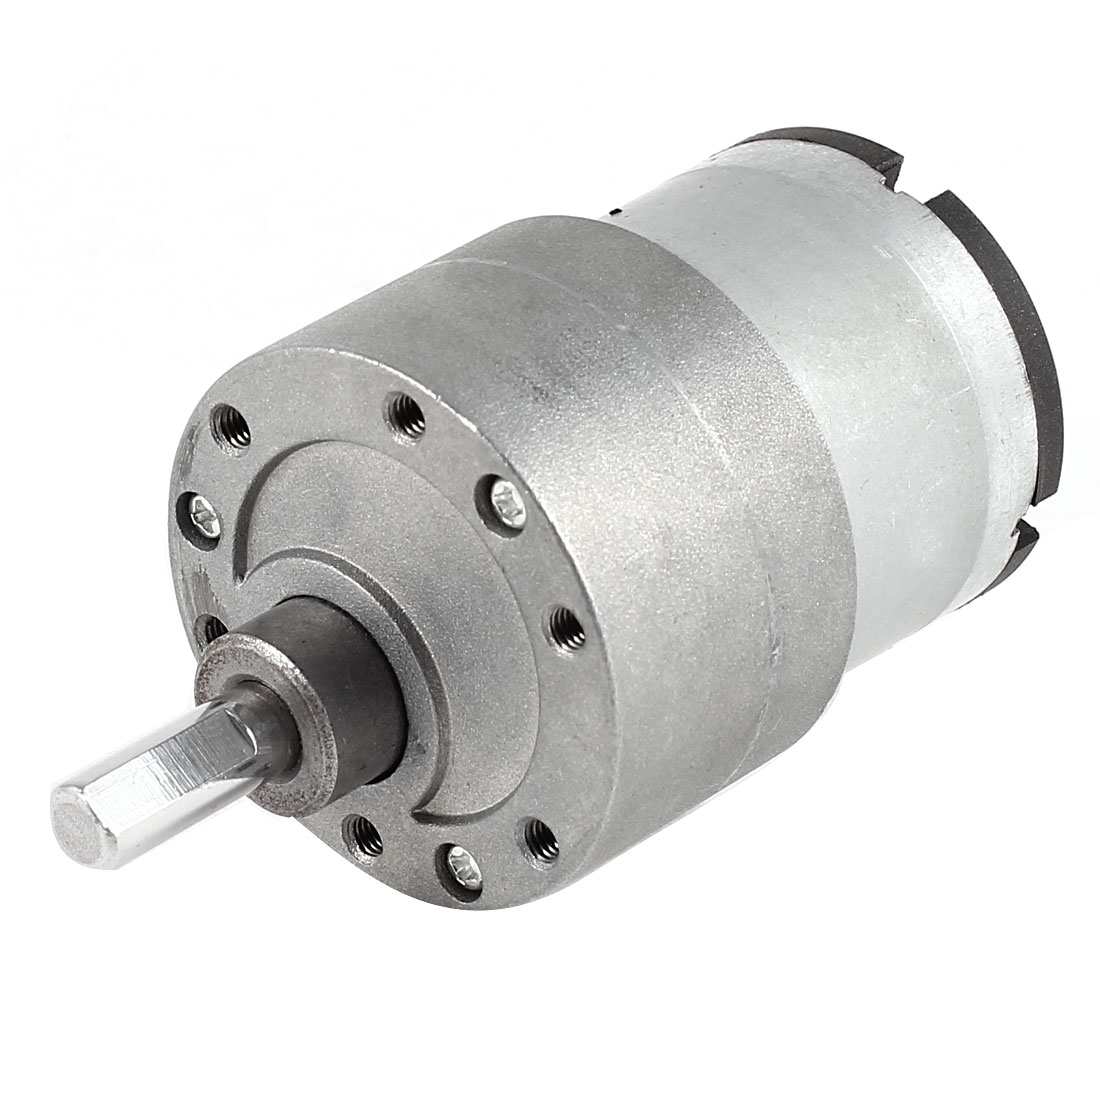 DC 12V 319RPM 6mm Diameter Shaft Electric Geared Box Speed Reduction Motor